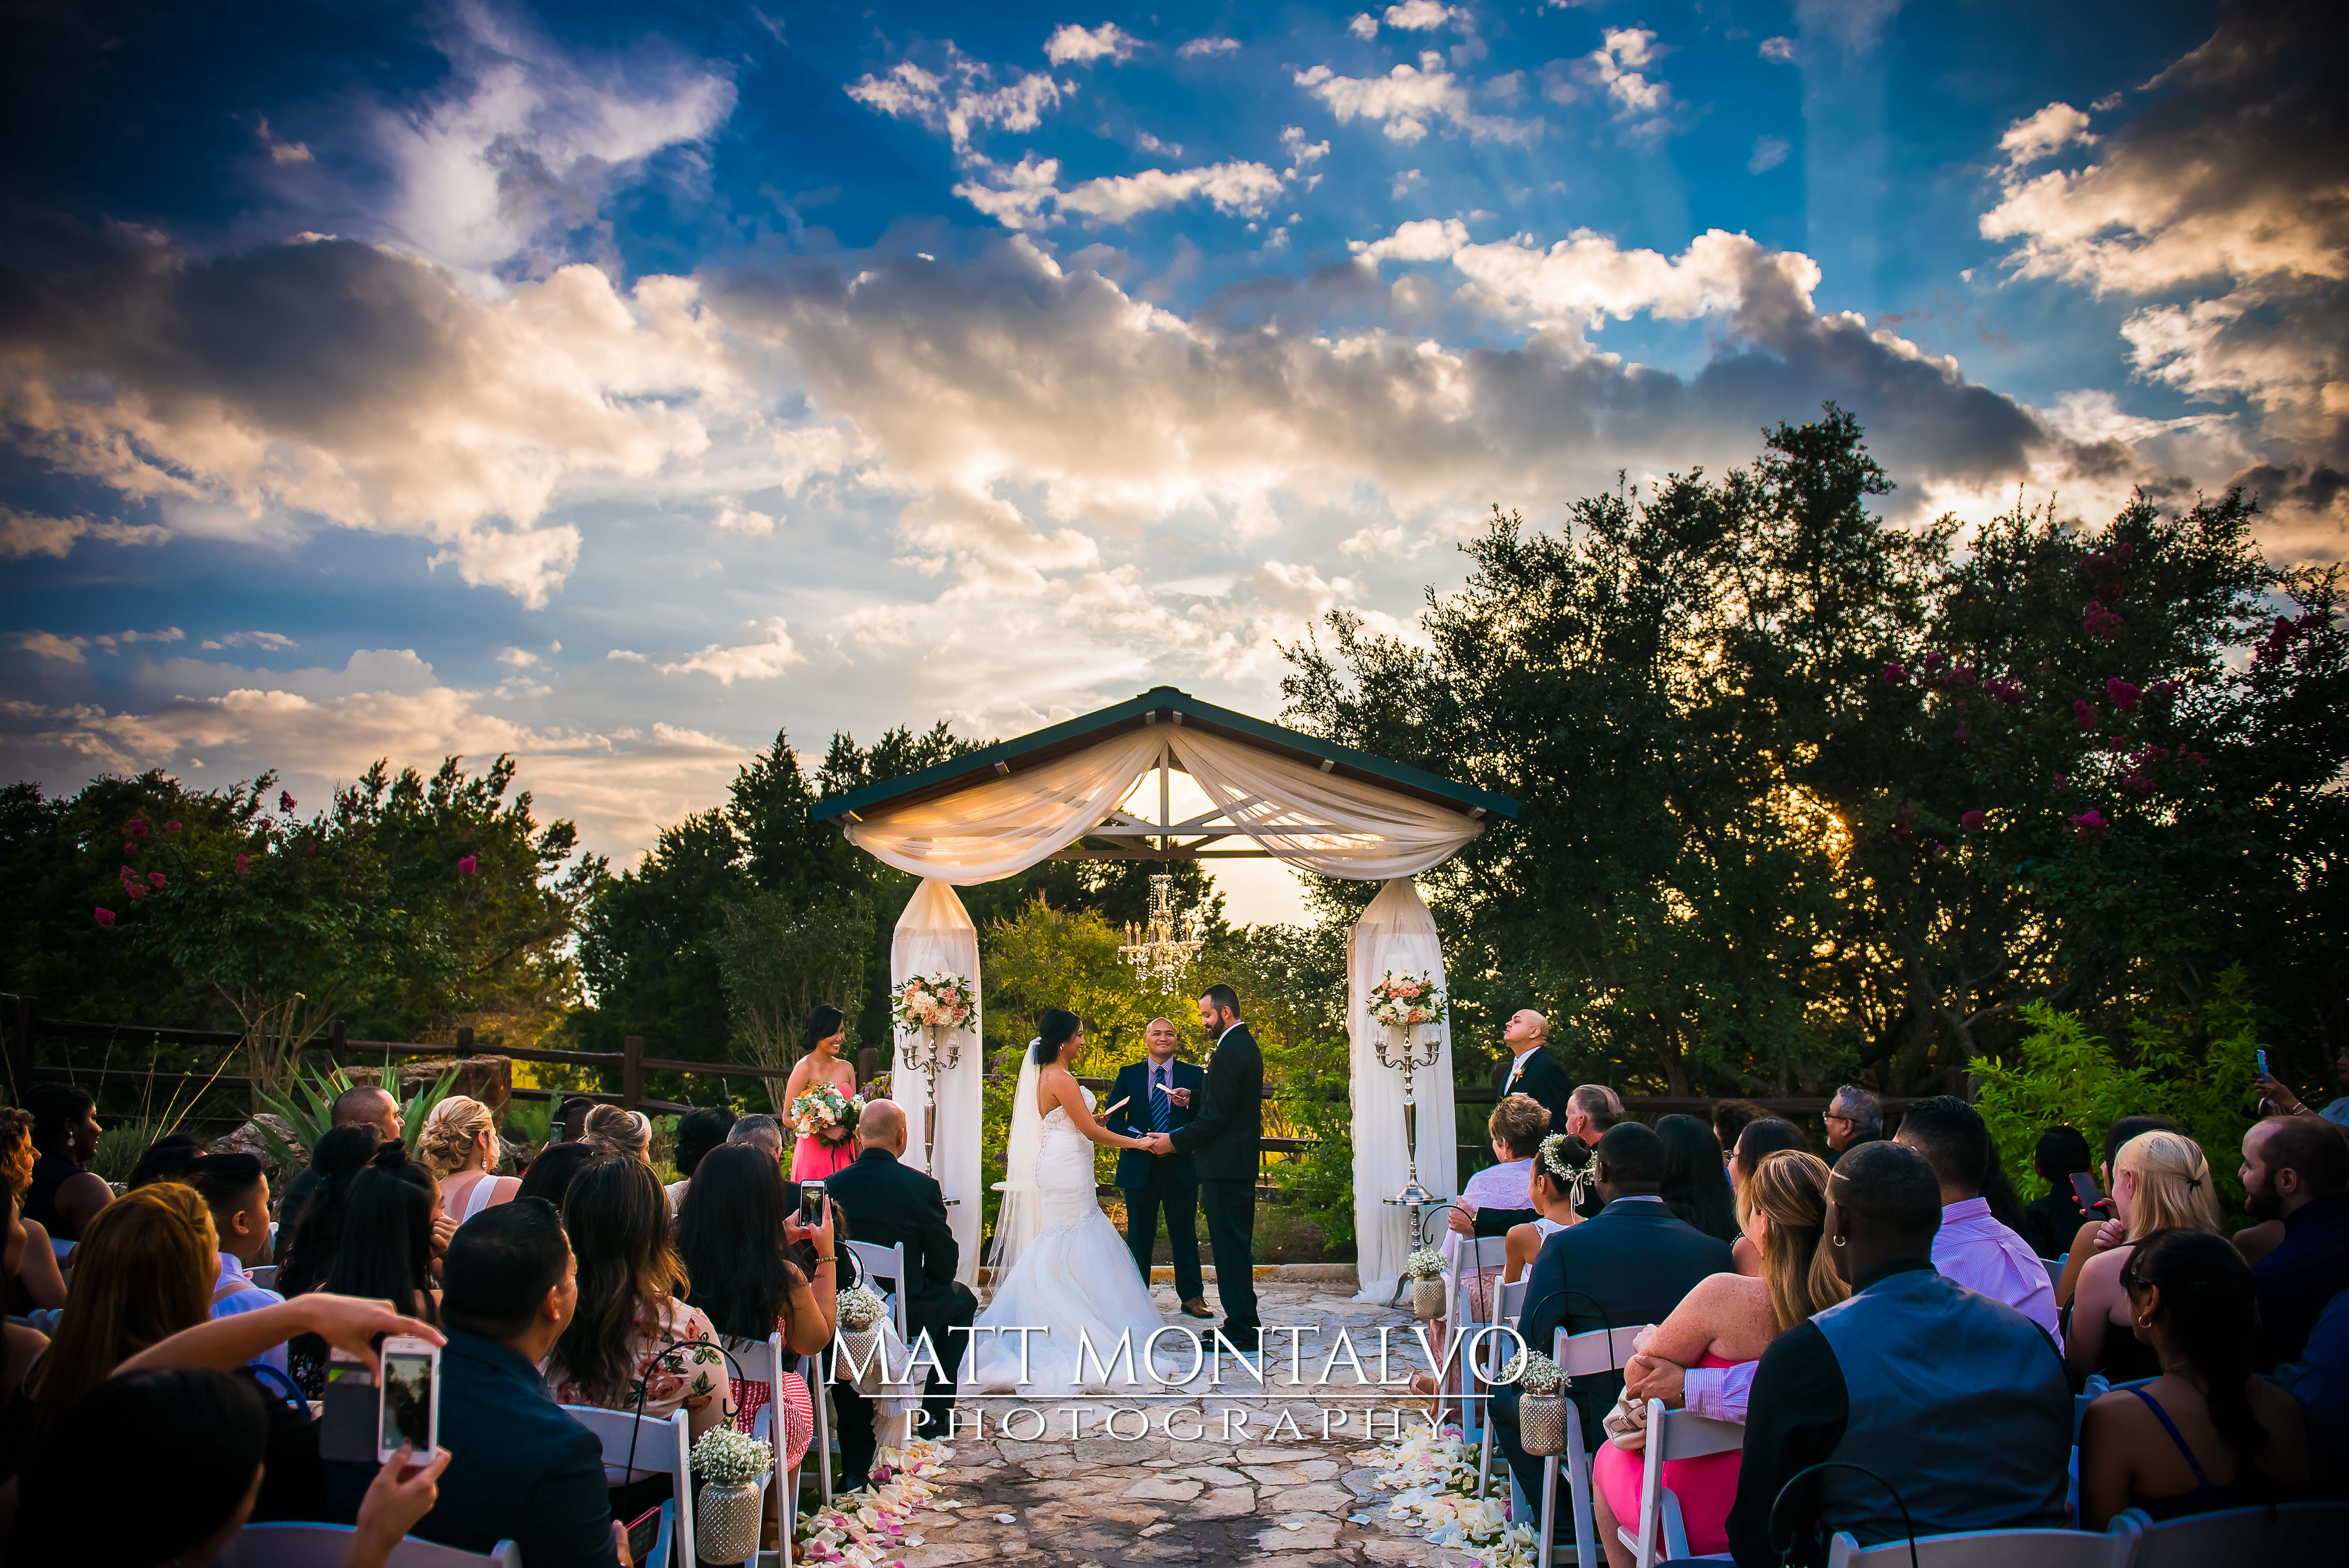 Terrace club wedding photography betaine bernie for Terrace wedding